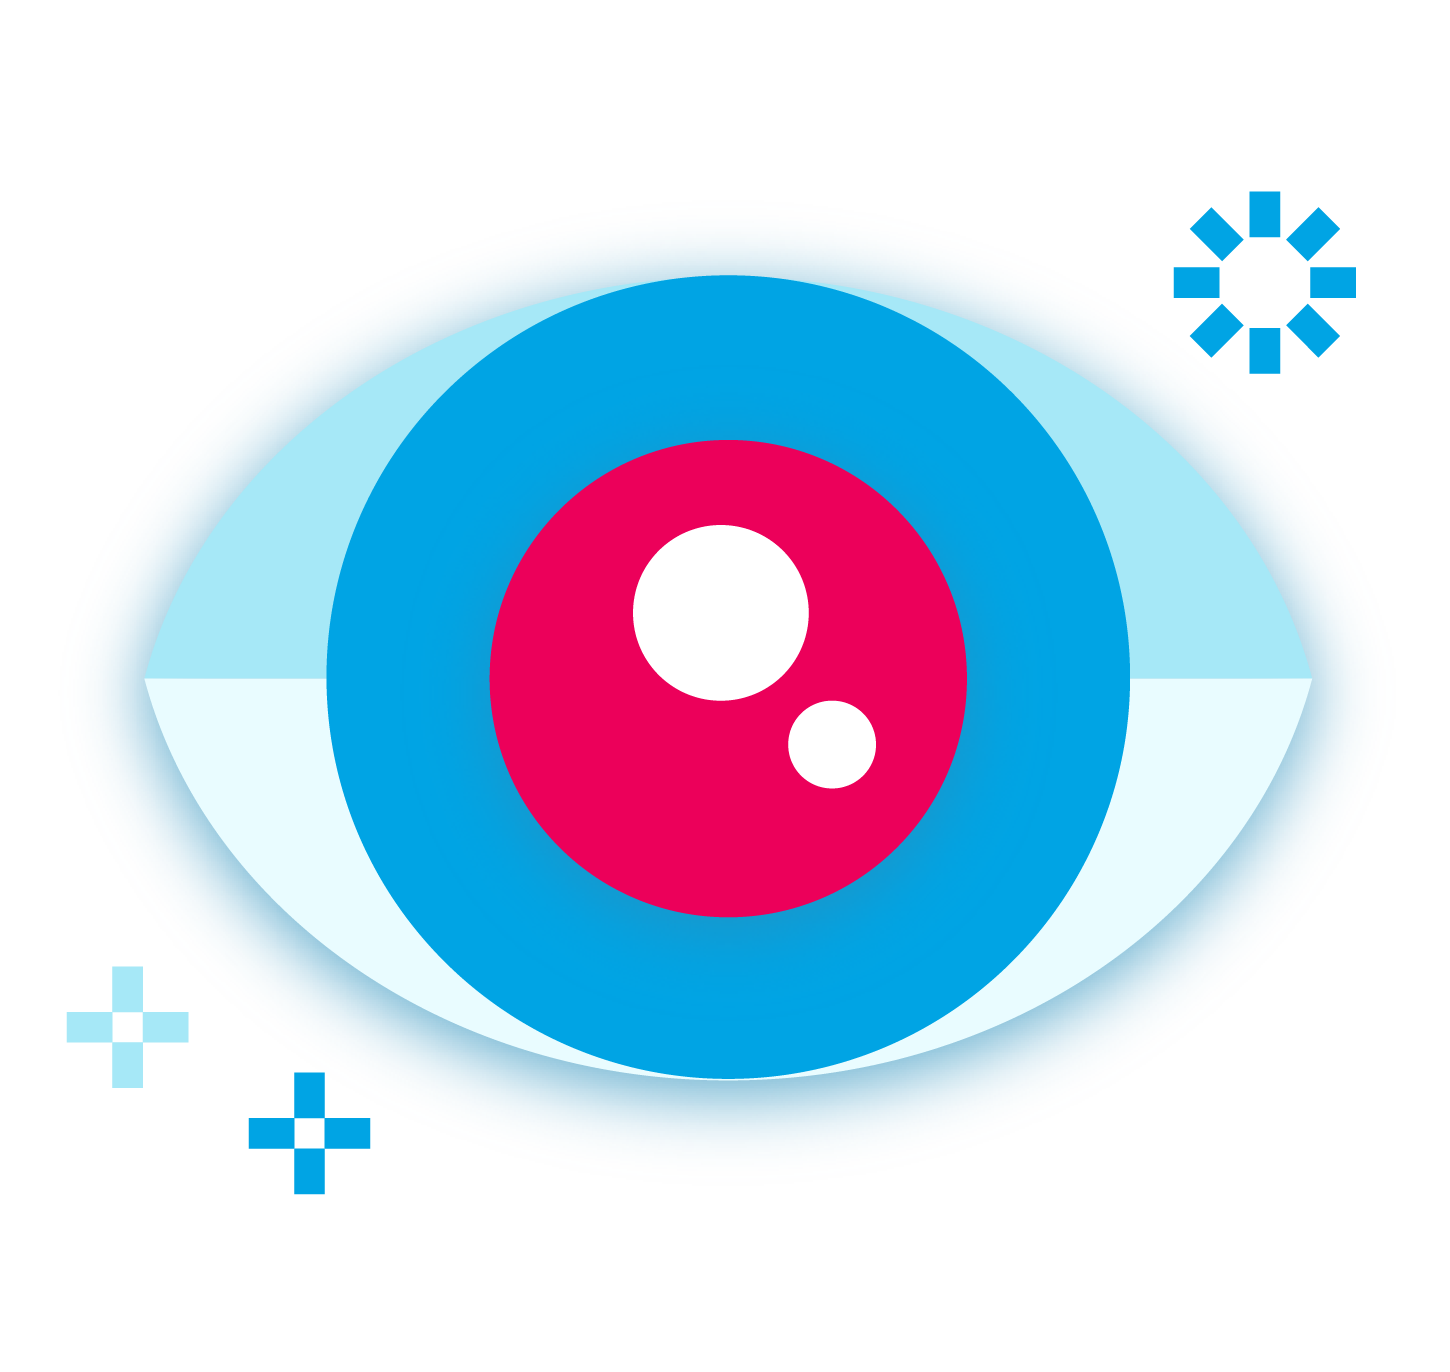 Stylized icon of an eye